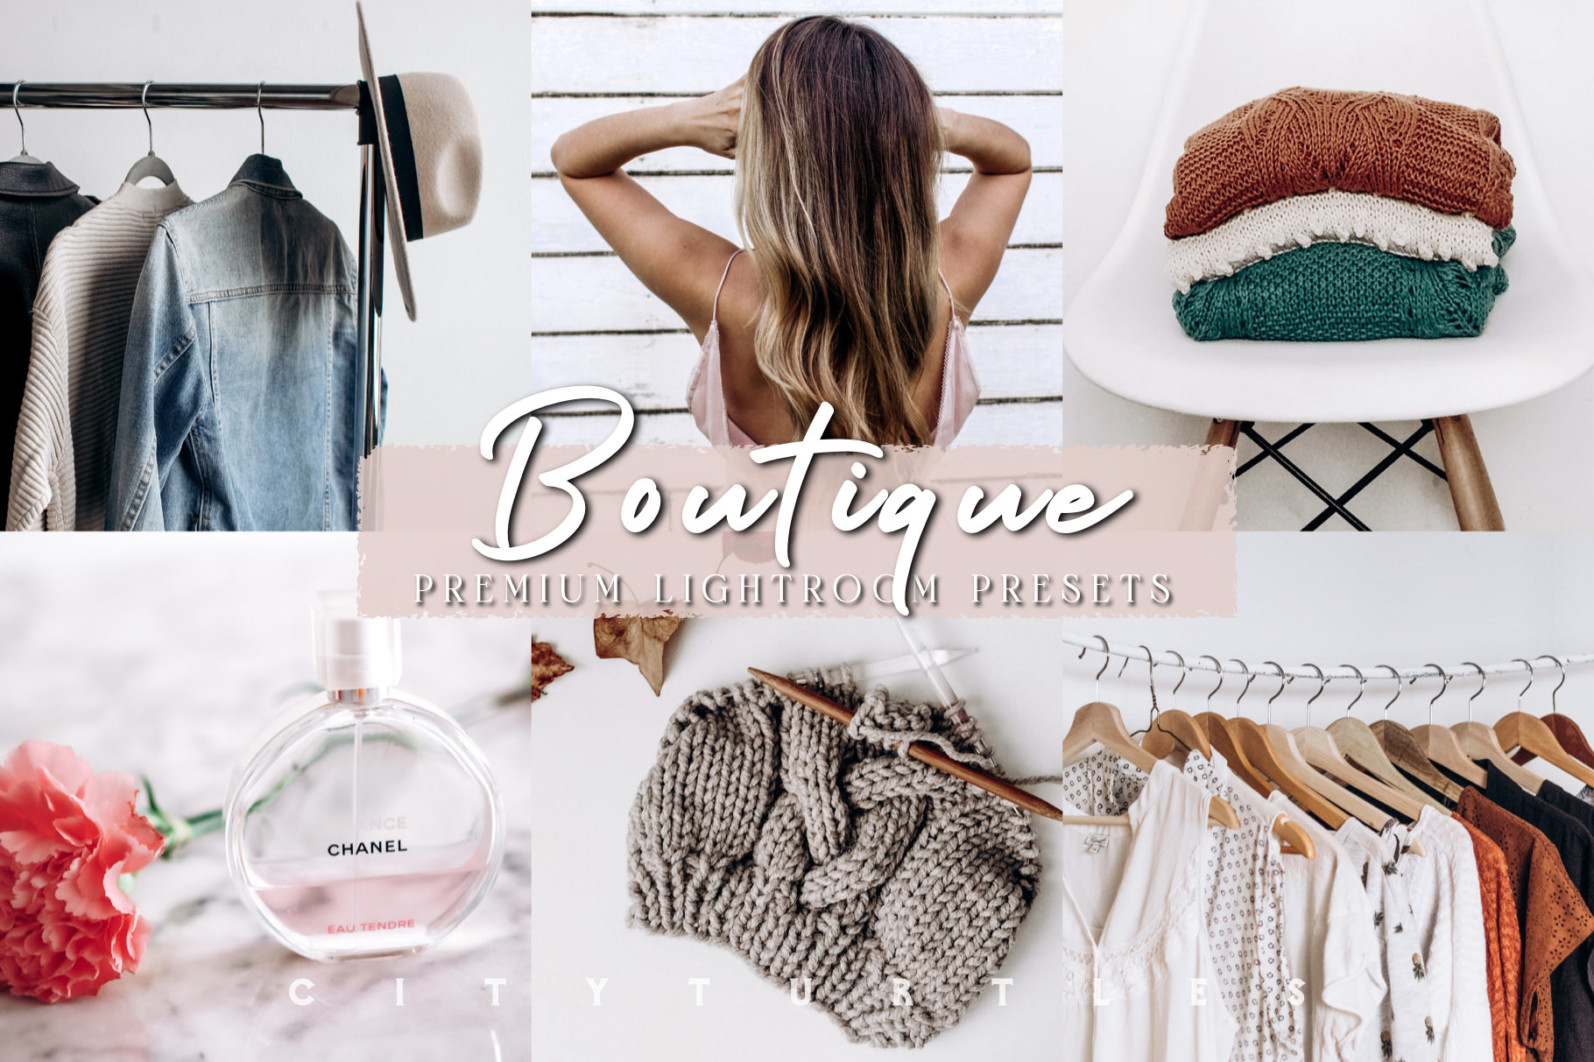 THE LIGHT & AIRY BUNDLE - Natural Clean Bright Lightroom Presets for Desktop + Mobile - bright clean white indoor clothing boutique shop thrift poshamrk etsy lightroom presets mobile desktop filters 1 -